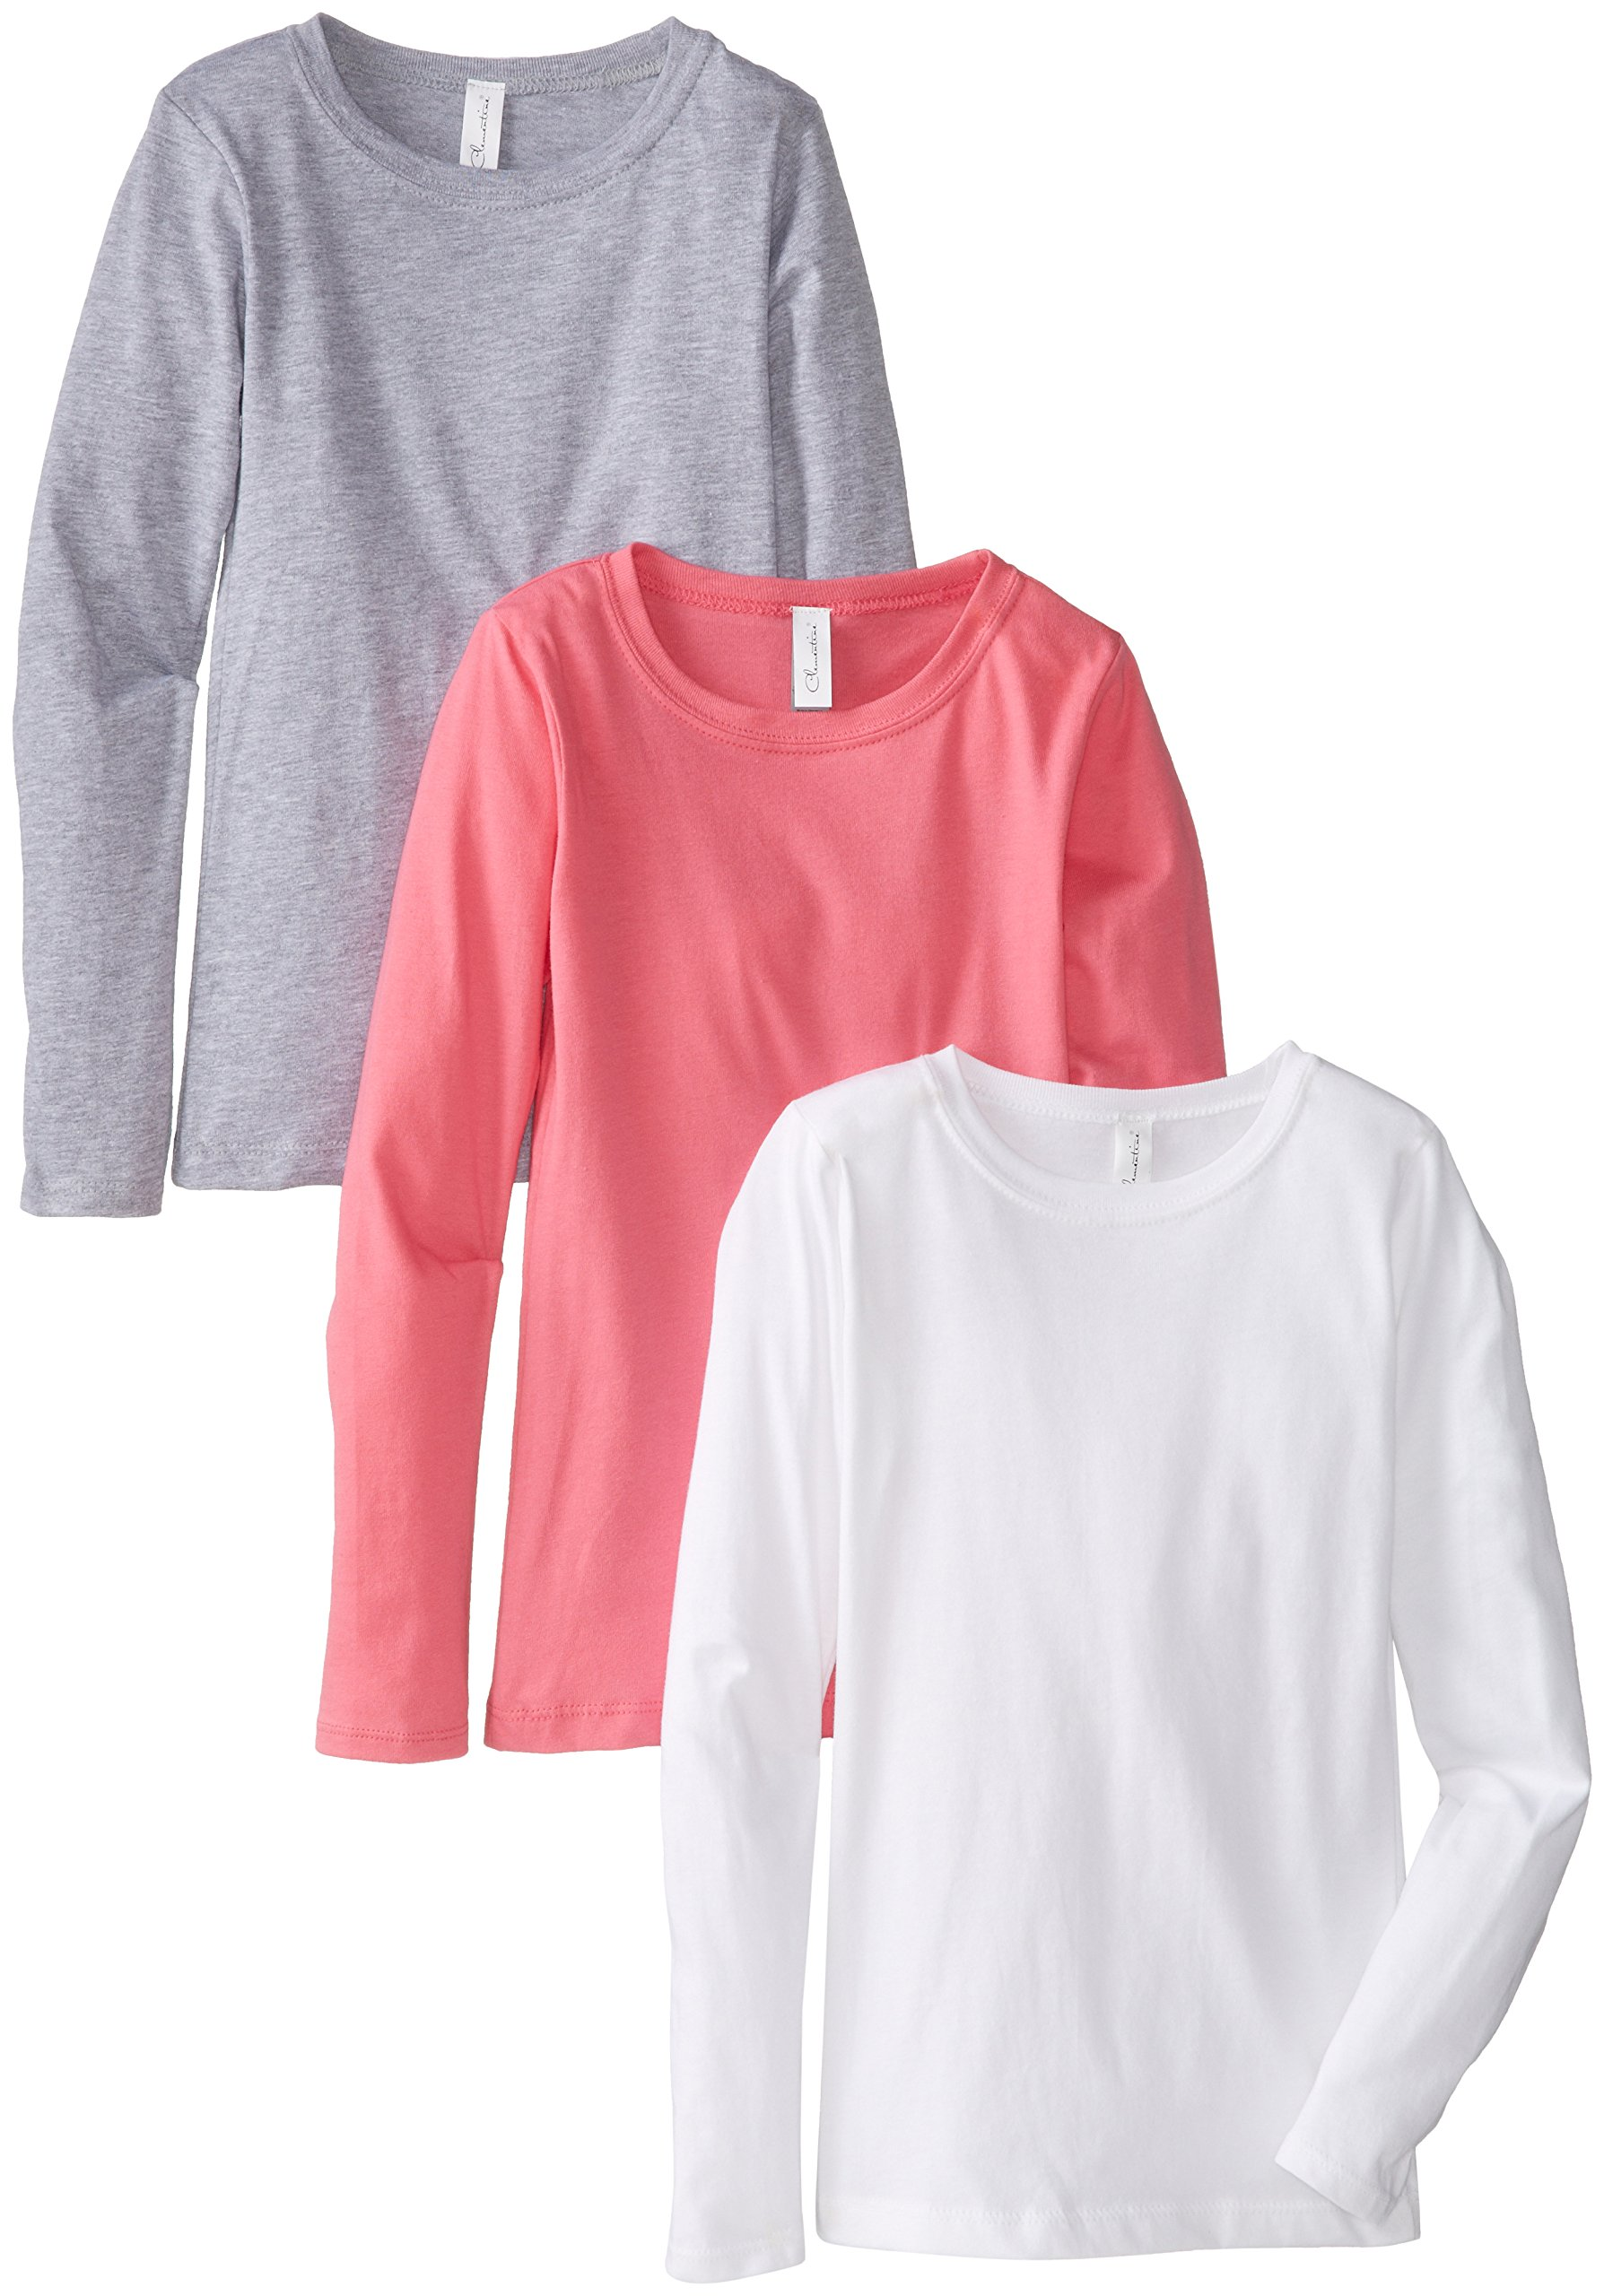 Clementine Big Girls' Everyday Long Sleeve Tee 3 Pack, White/Grey/Hot Pink,Medium (7-8) by Clementine Apparel (Image #1)